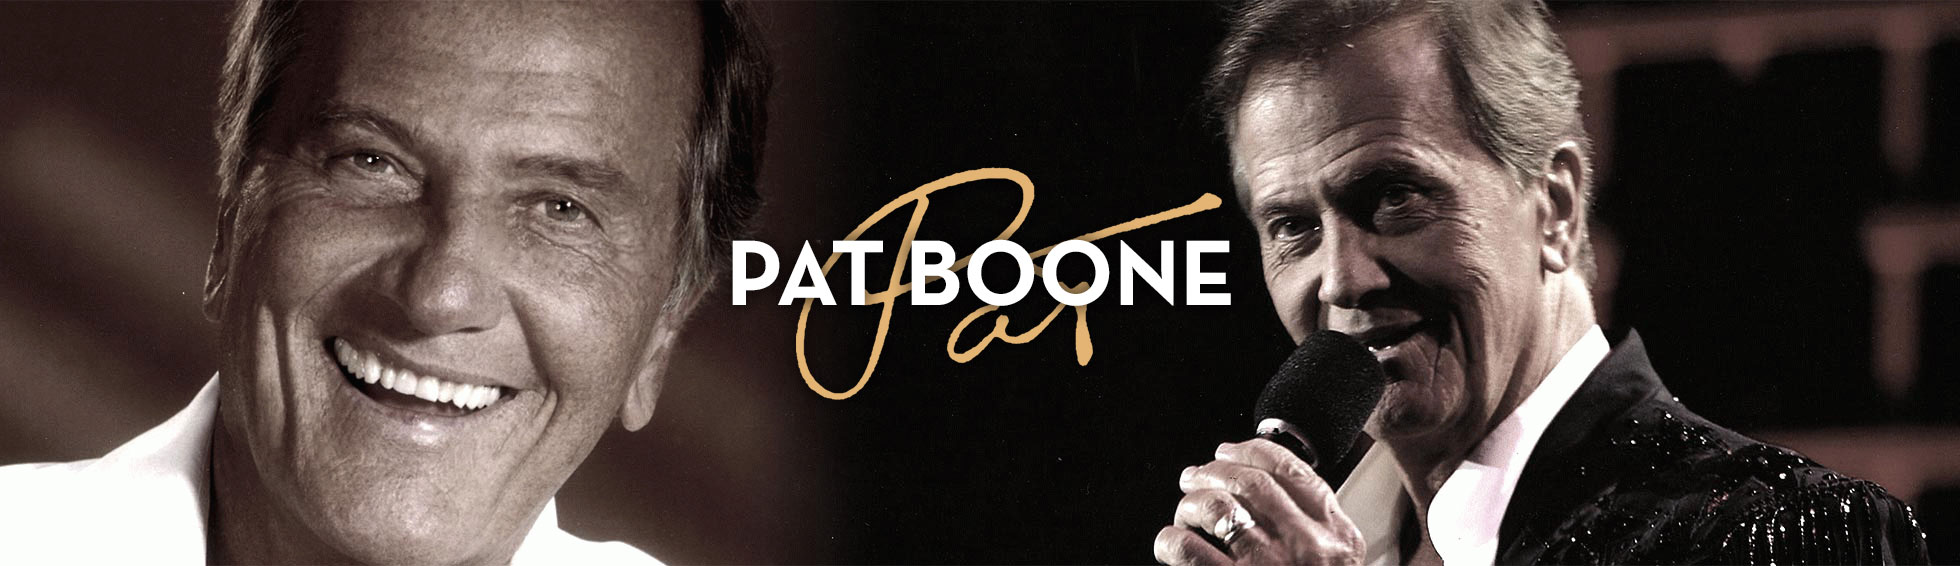 Pat Boone iconic pop star bio